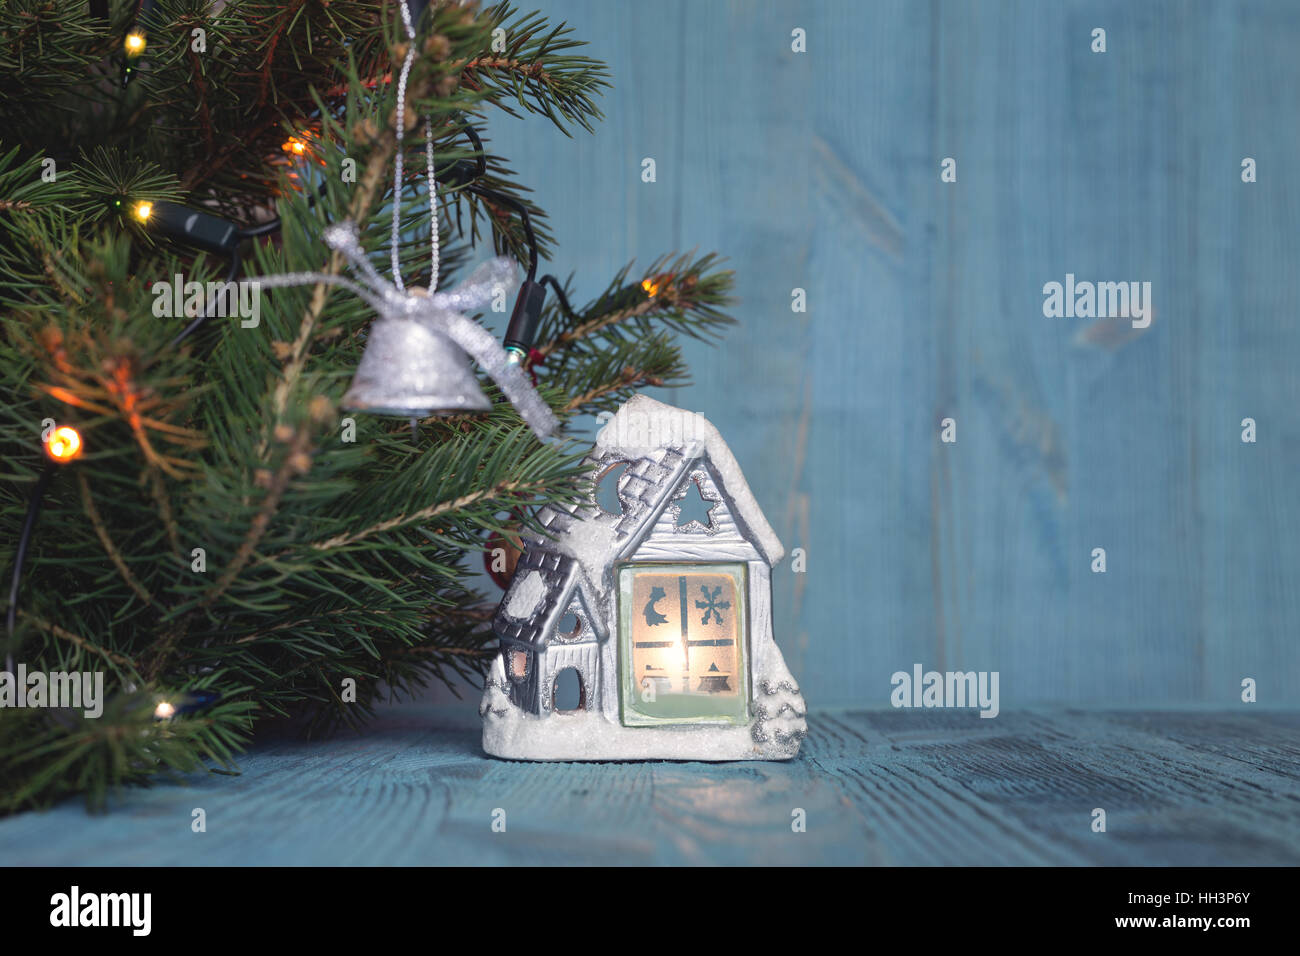 Christmas tree on a background of blue planks - Stock Image